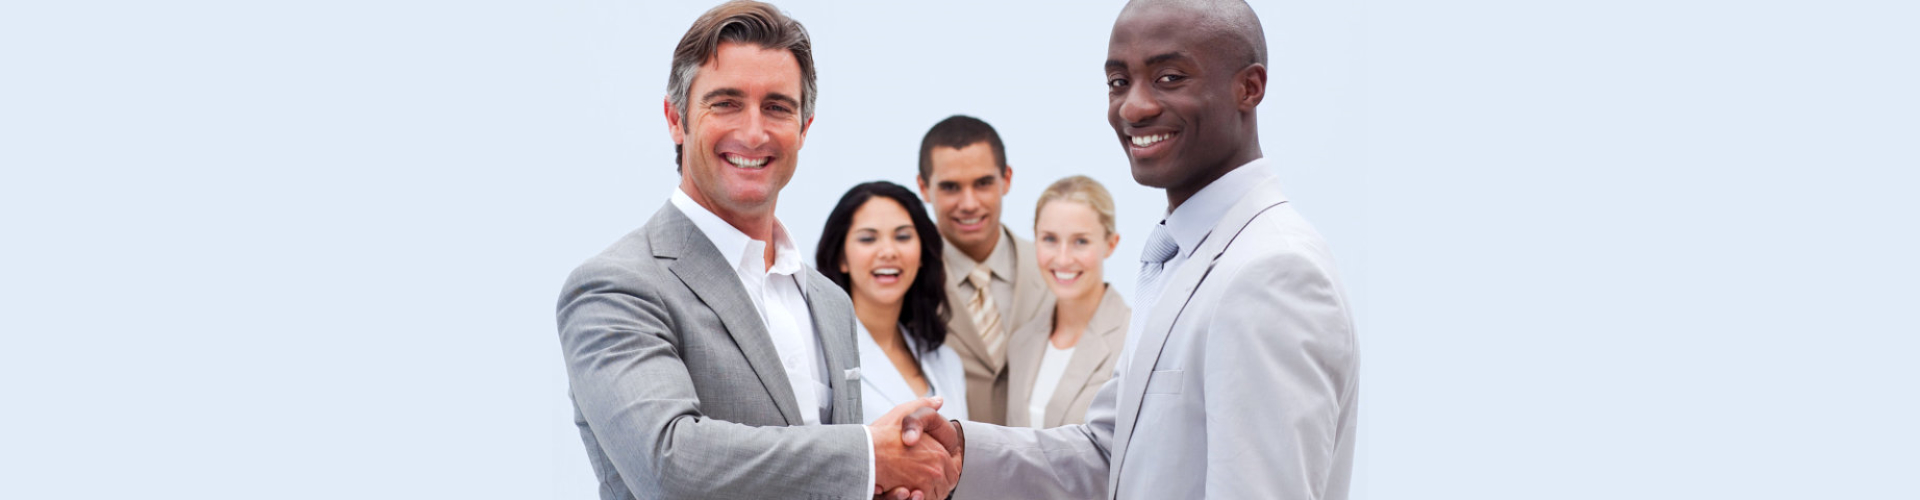 group of young professionals smiling